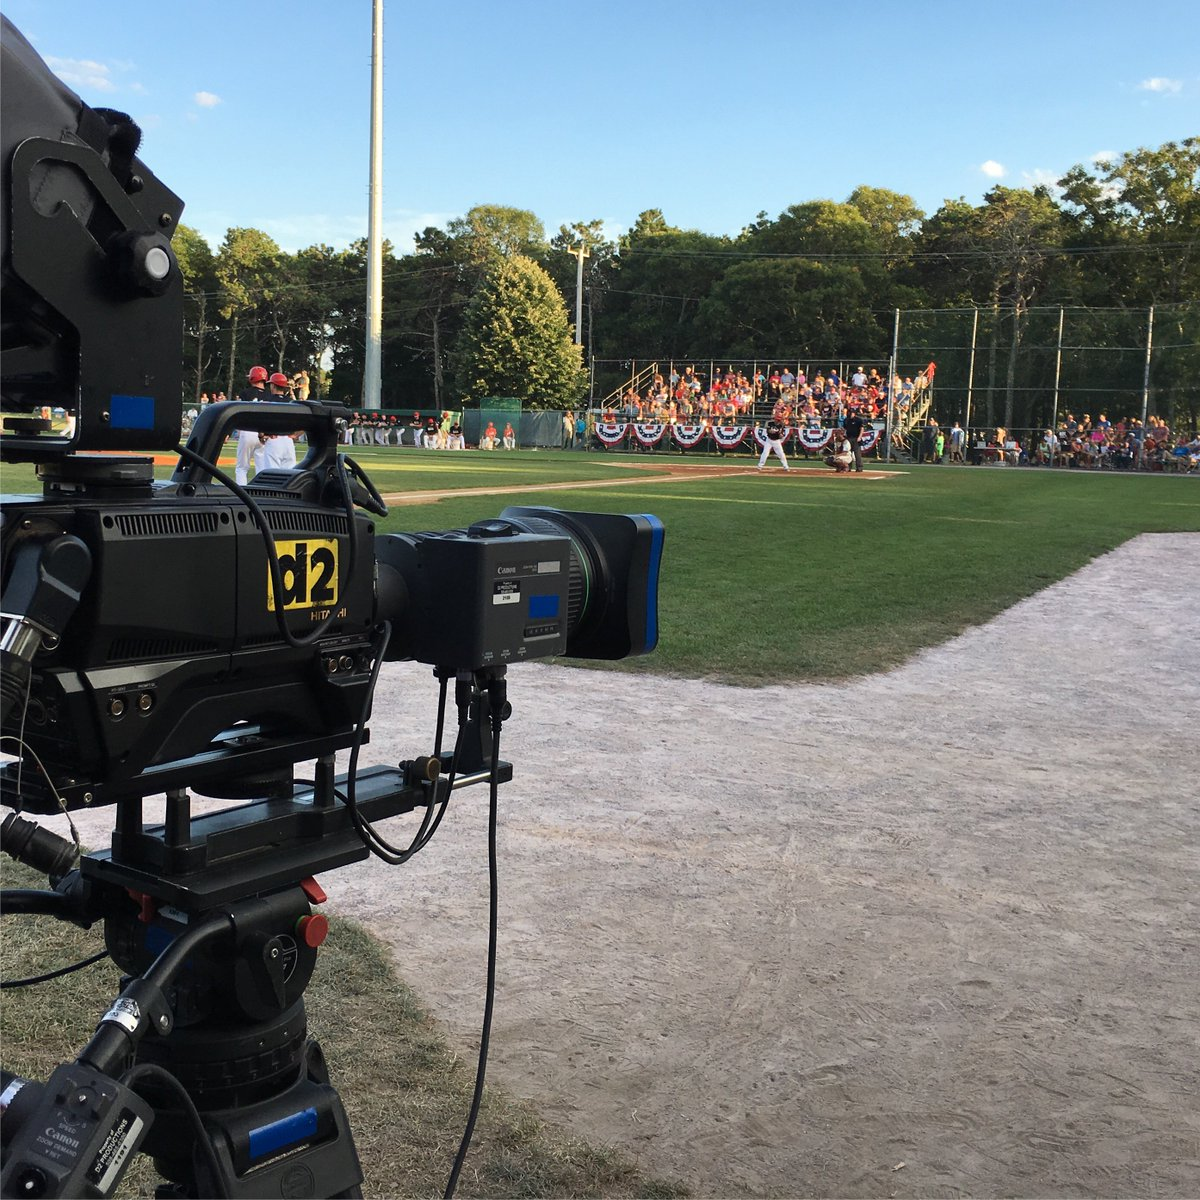 View from low 3rd @FirebirdsCCBL at @HarwichMariners. @ericfrede Ken Ryan @Megan_OBrien21 @GabbyTWCNews w/ the call